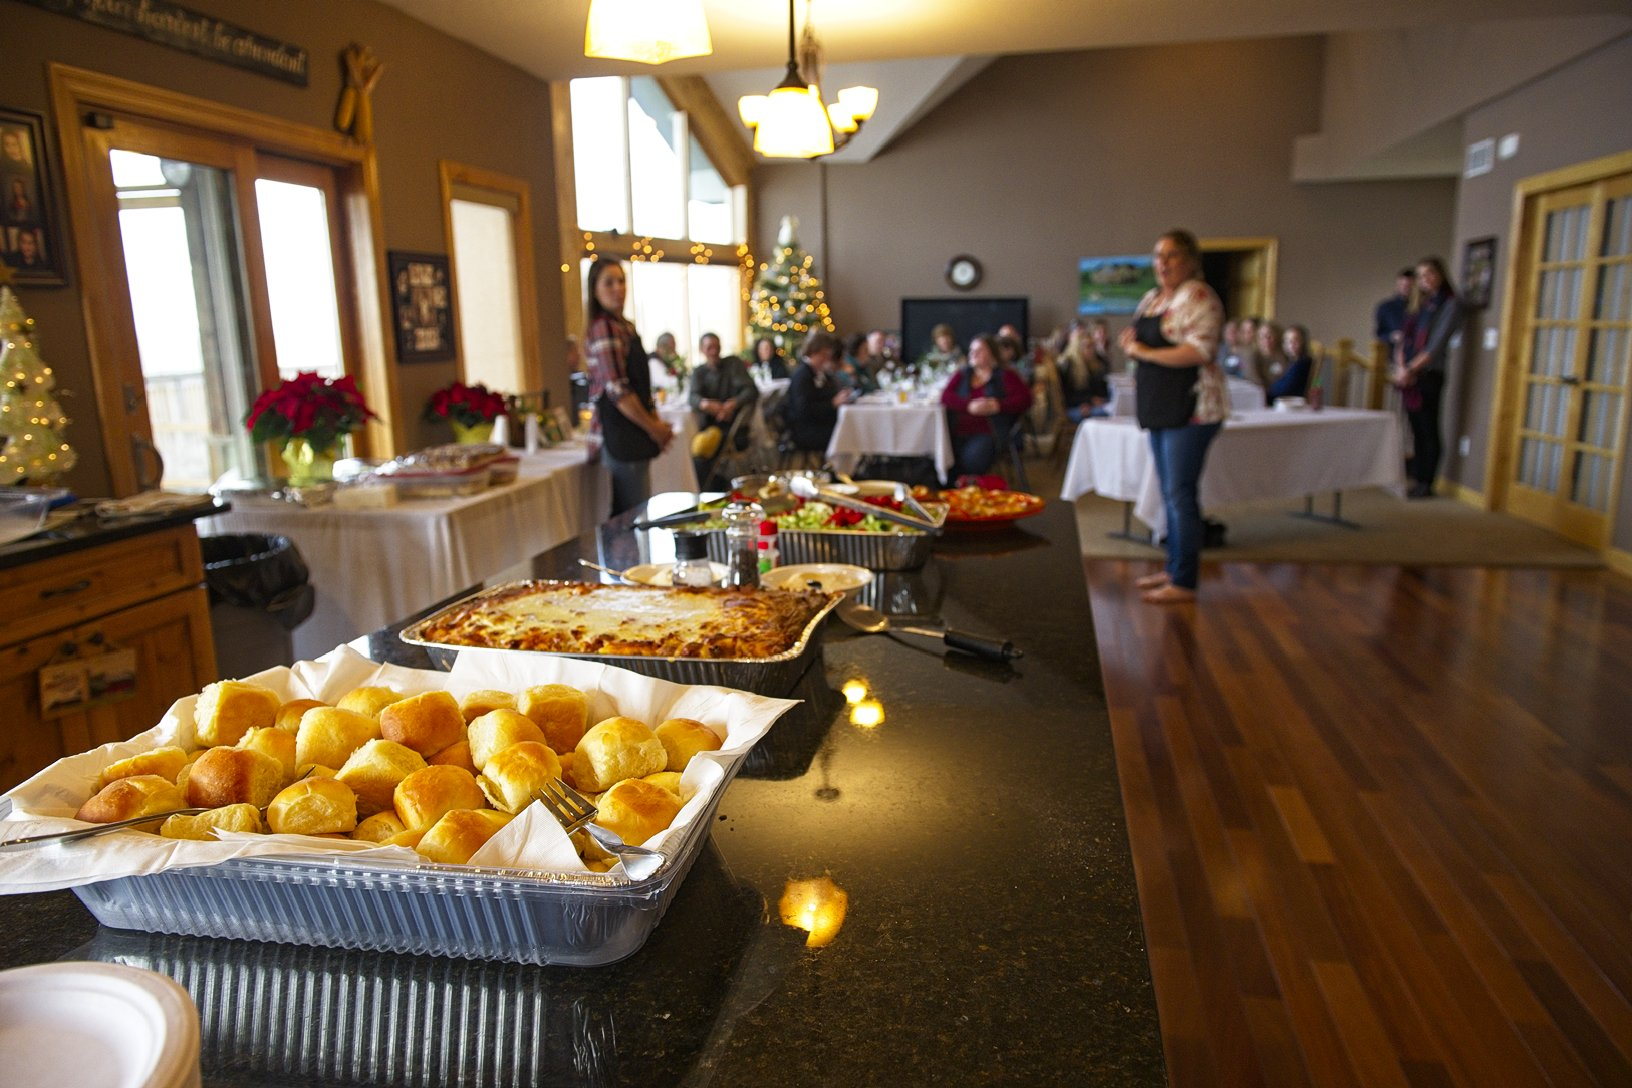 Cristen Clark welcomed Food U participants to her home in Runnells for a homemade lunch and conversation about farming in Iowa. Photo credit: Joseph L. Murphy, Iowa Soybean Association